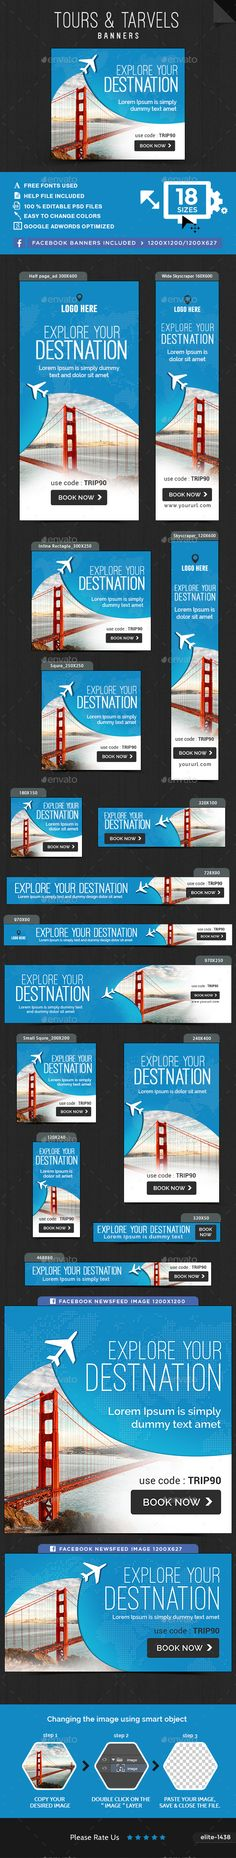 Tours & Travel Web Banners Template PSD. Download here: http://graphicriver.net/item/tours-travel-banners/15962134?ref=ksioks